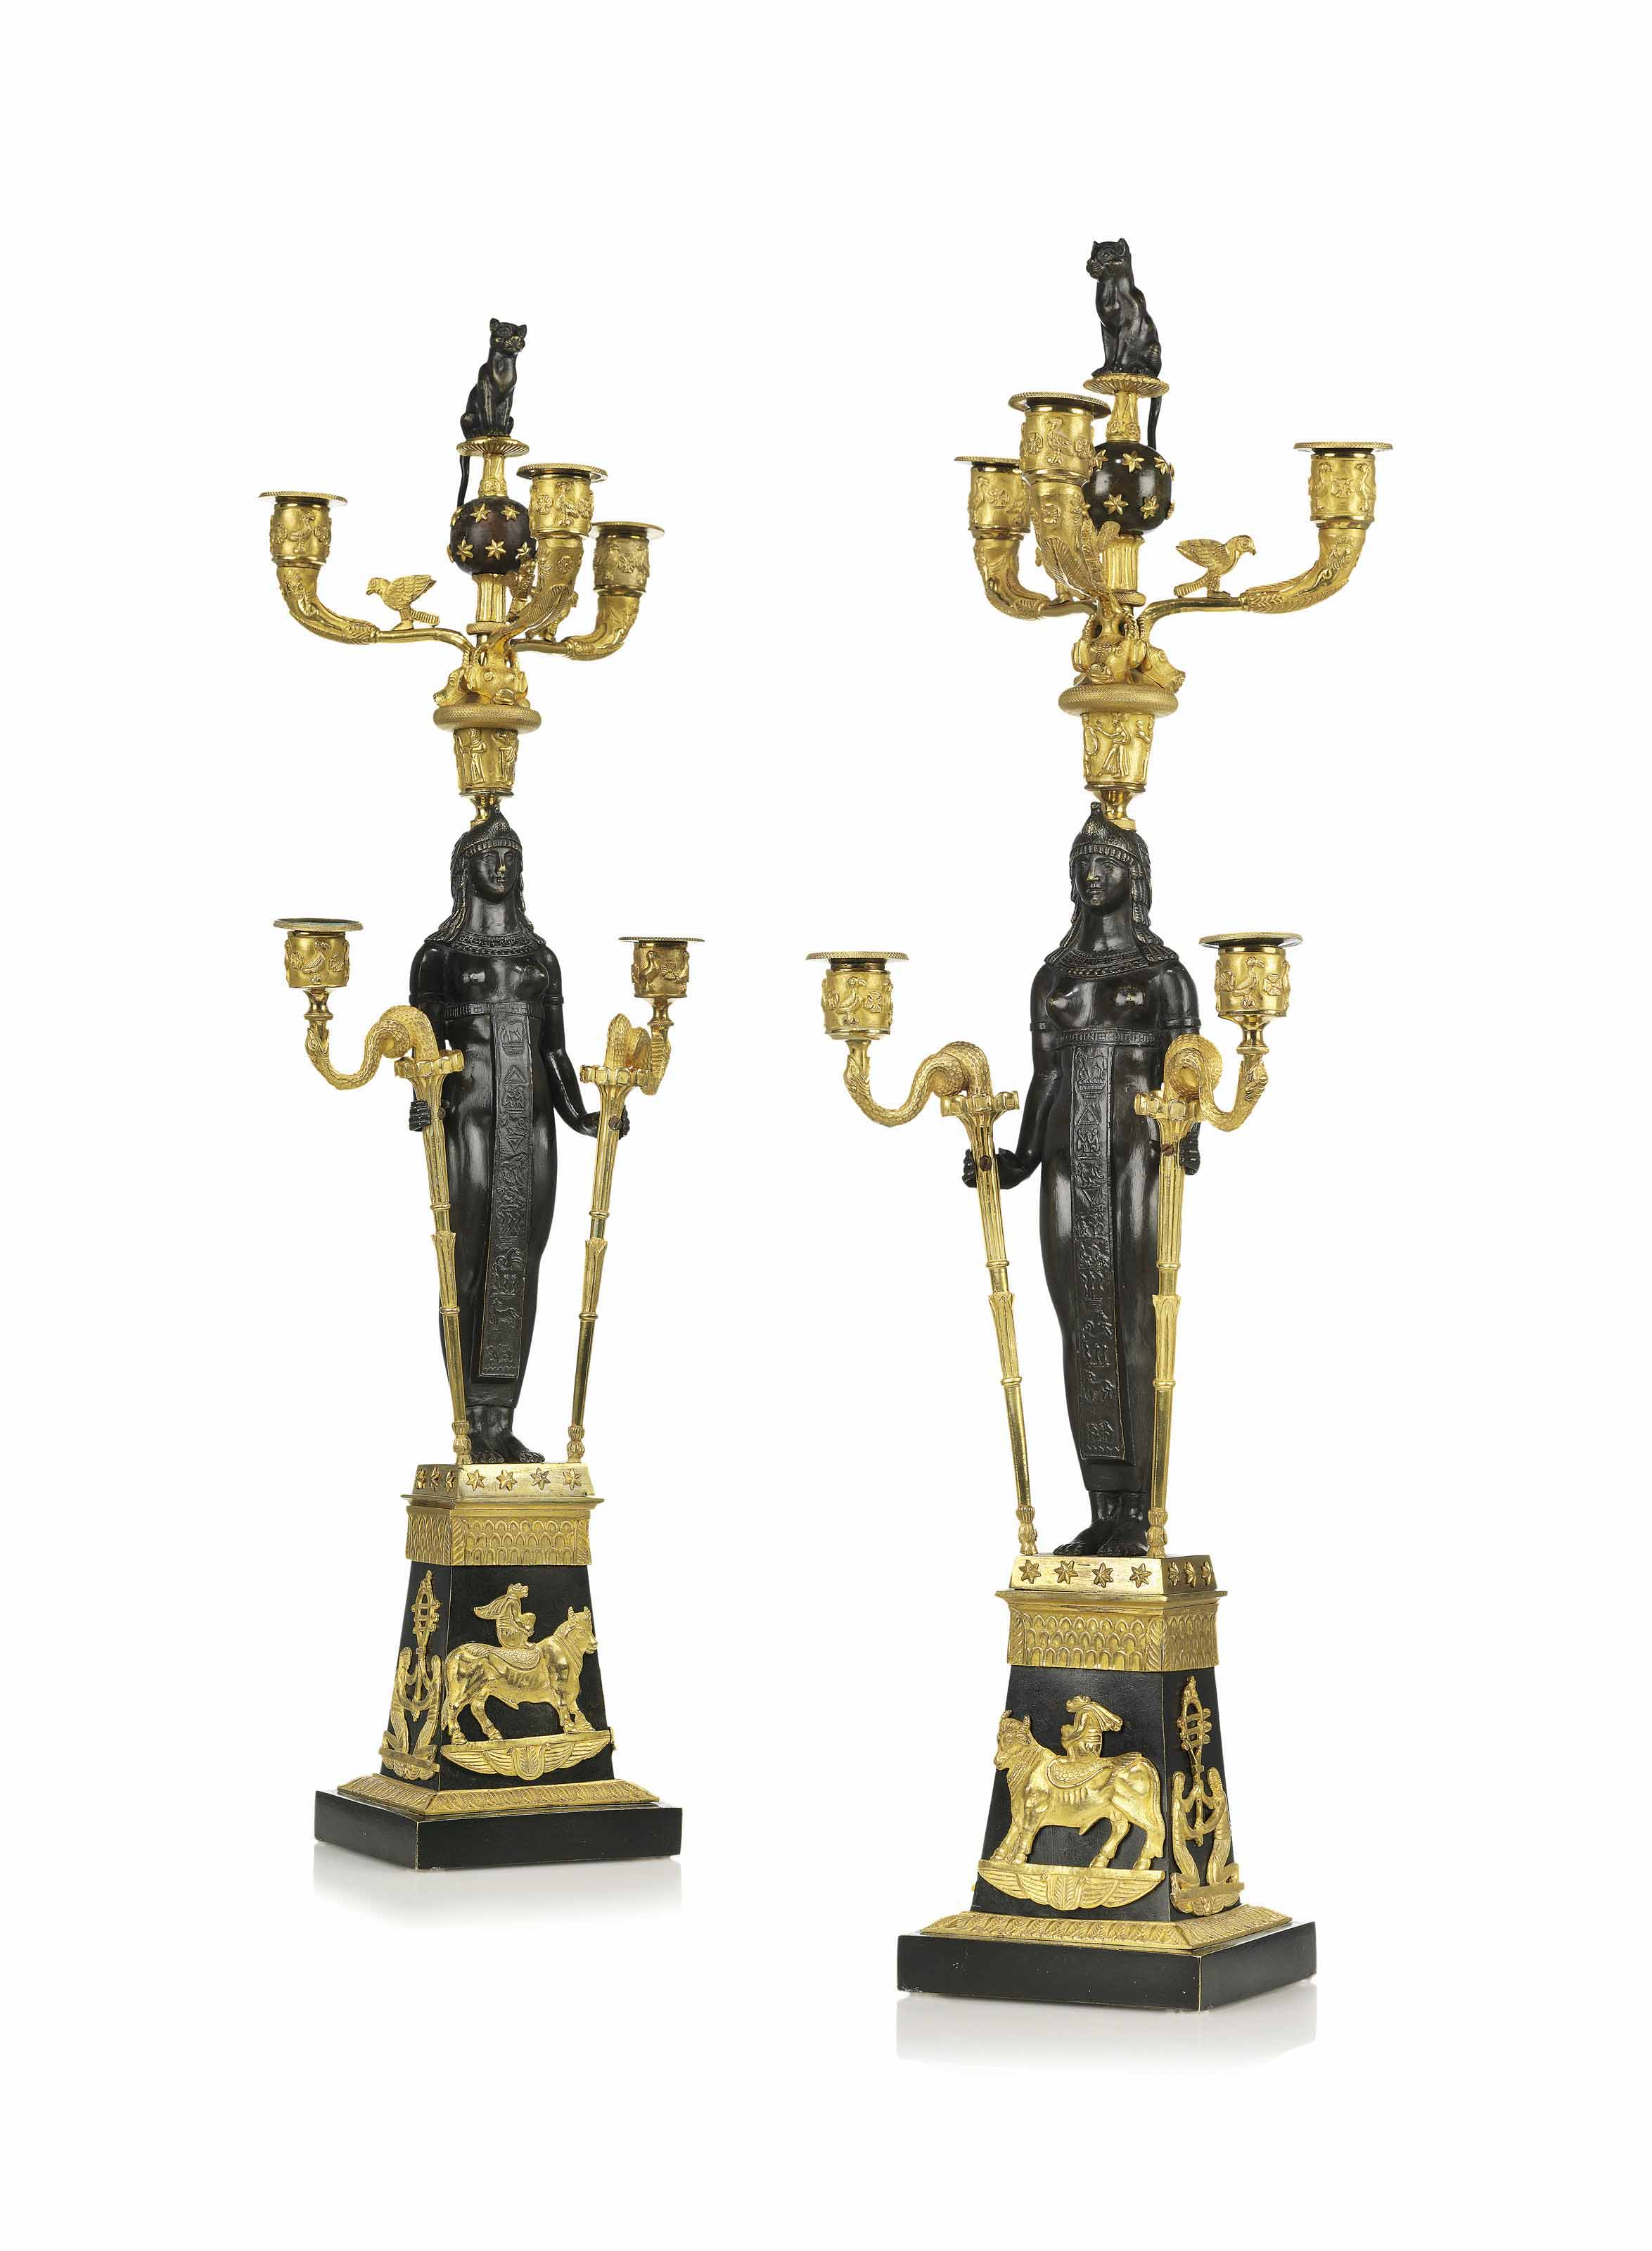 A PAIR OF RUSSIAN ORMOLU AND PATINATED-BRONZE FIVE-LIGHT CANDELABRA